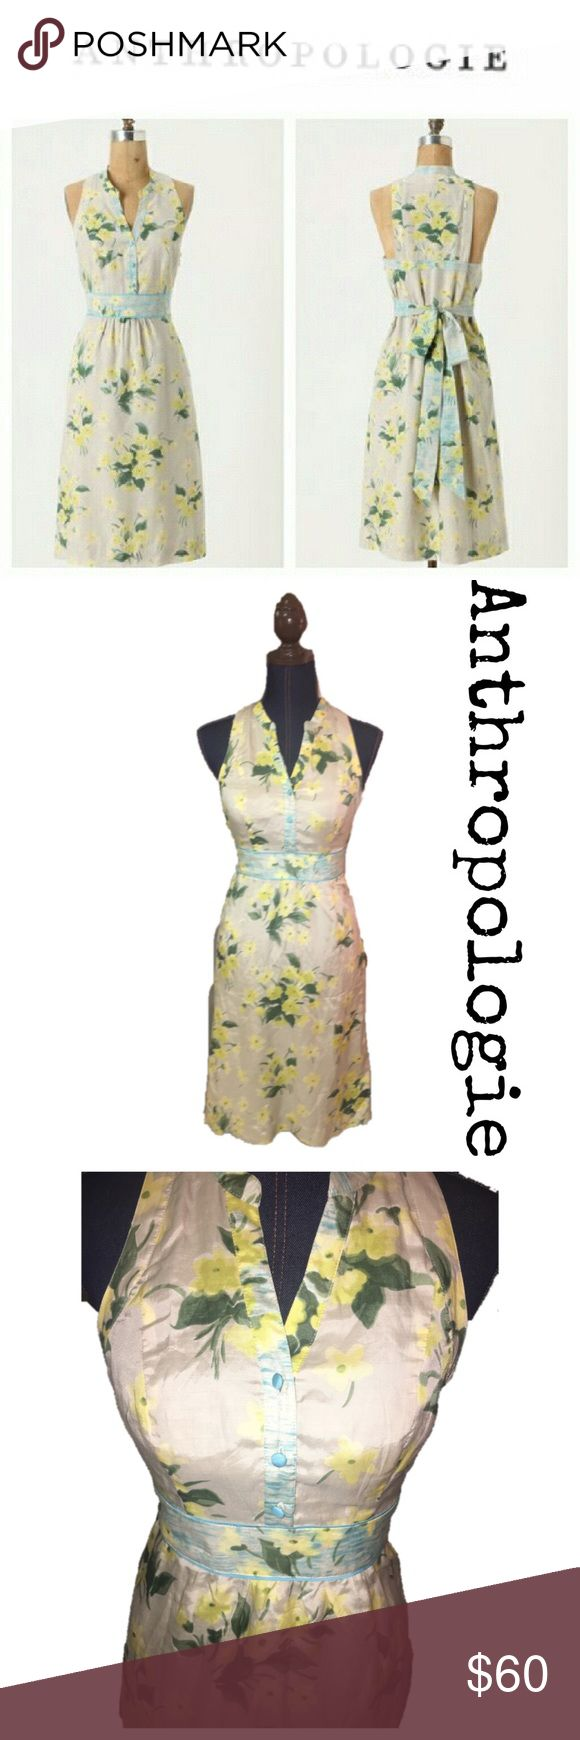 Maeve by anthropologie yellow floral dress Beautiful yellow and tan floral dress. Side zipper, ties in back. No flaws. Absolutely darling! Anthropologie Dresses Midi